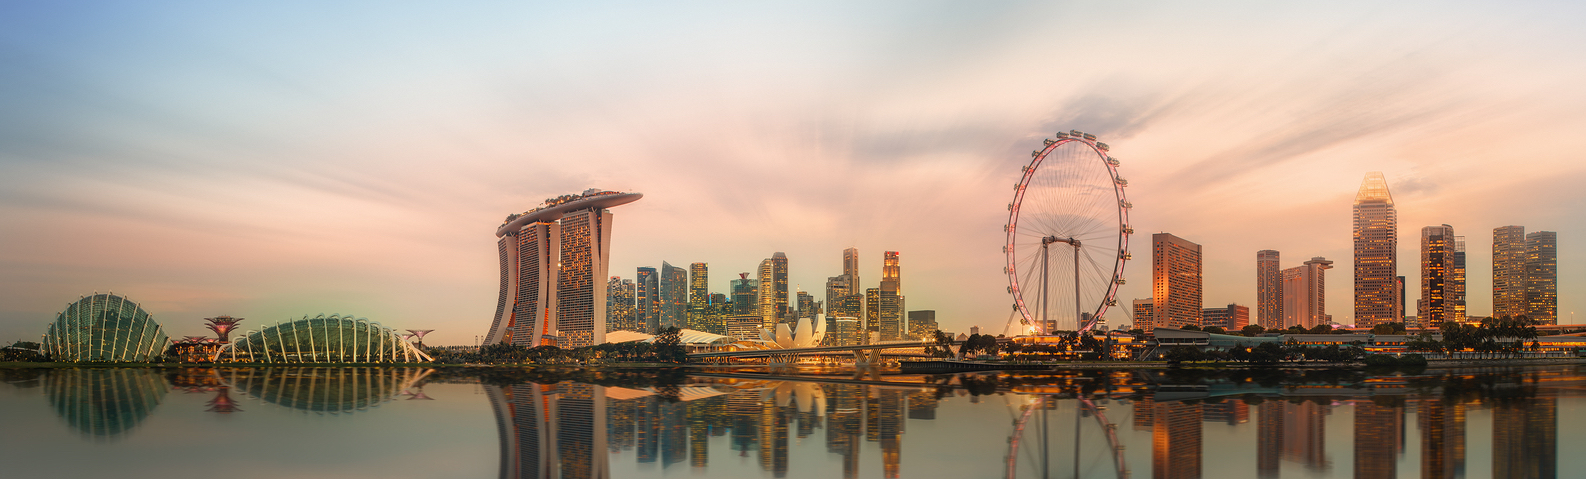 bigstock-Singapore-Skyline-CROP--96934127